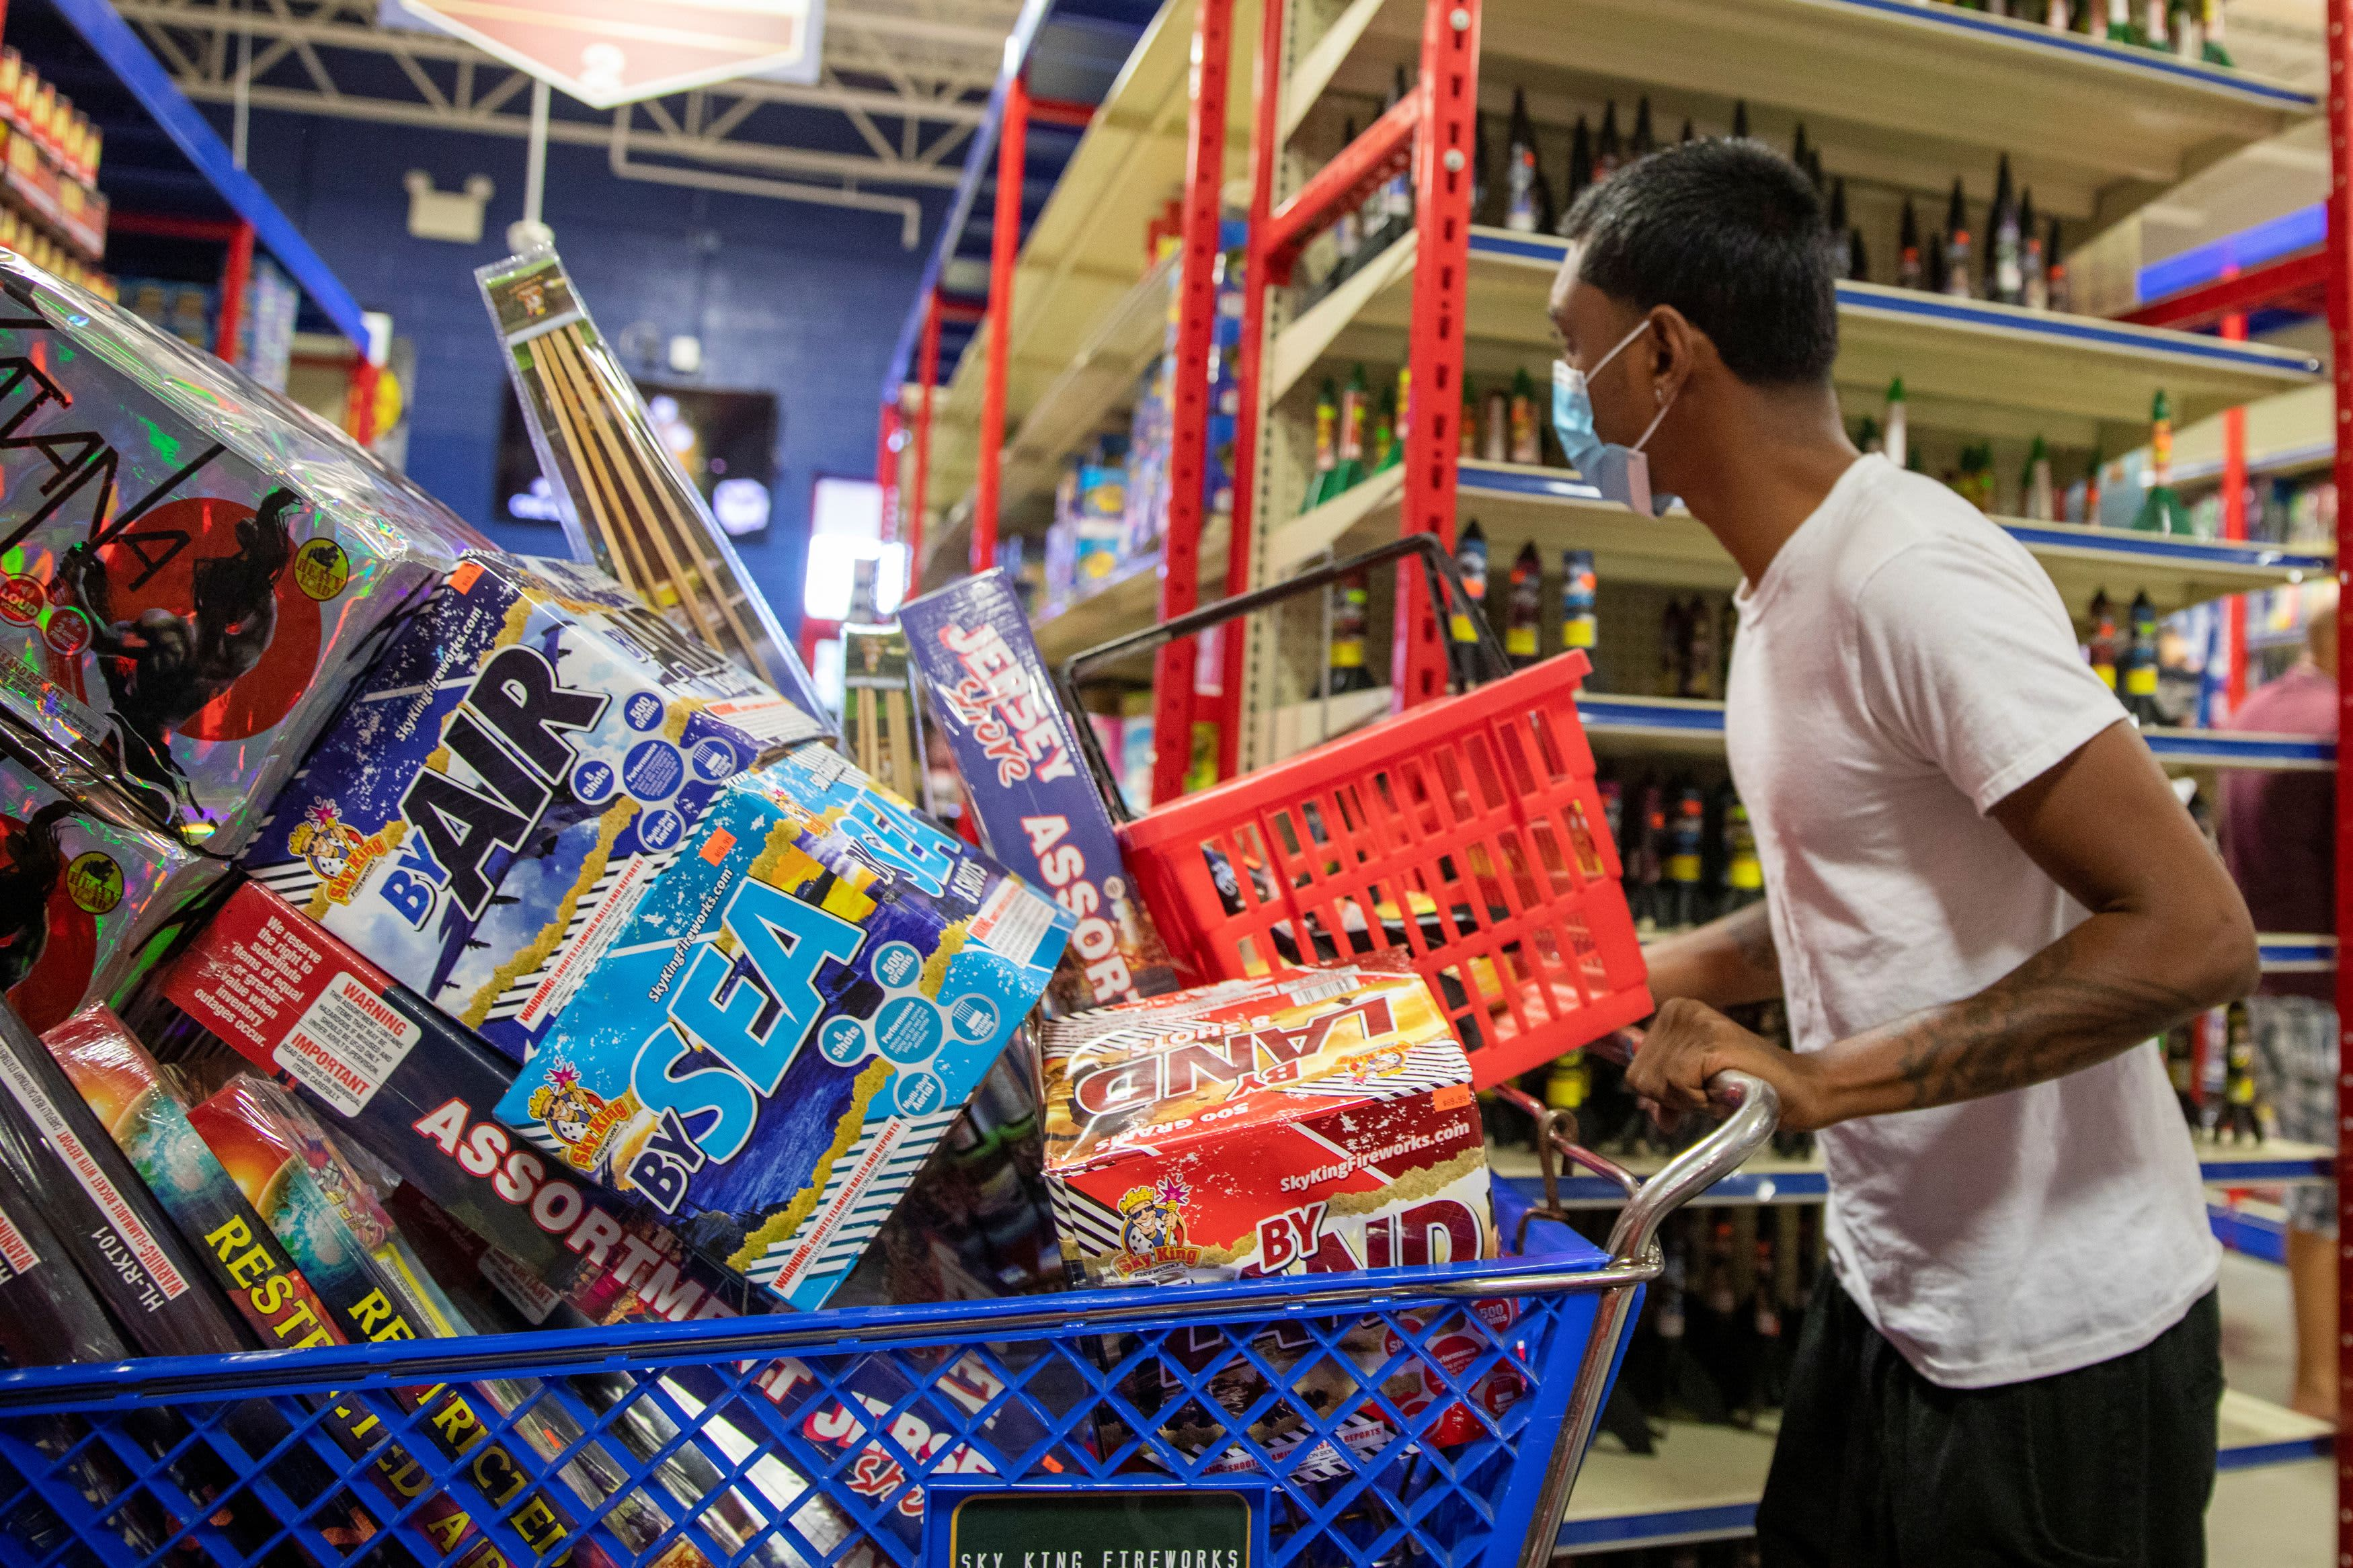 Fourth of July celebrations at home are driving record fireworks sales